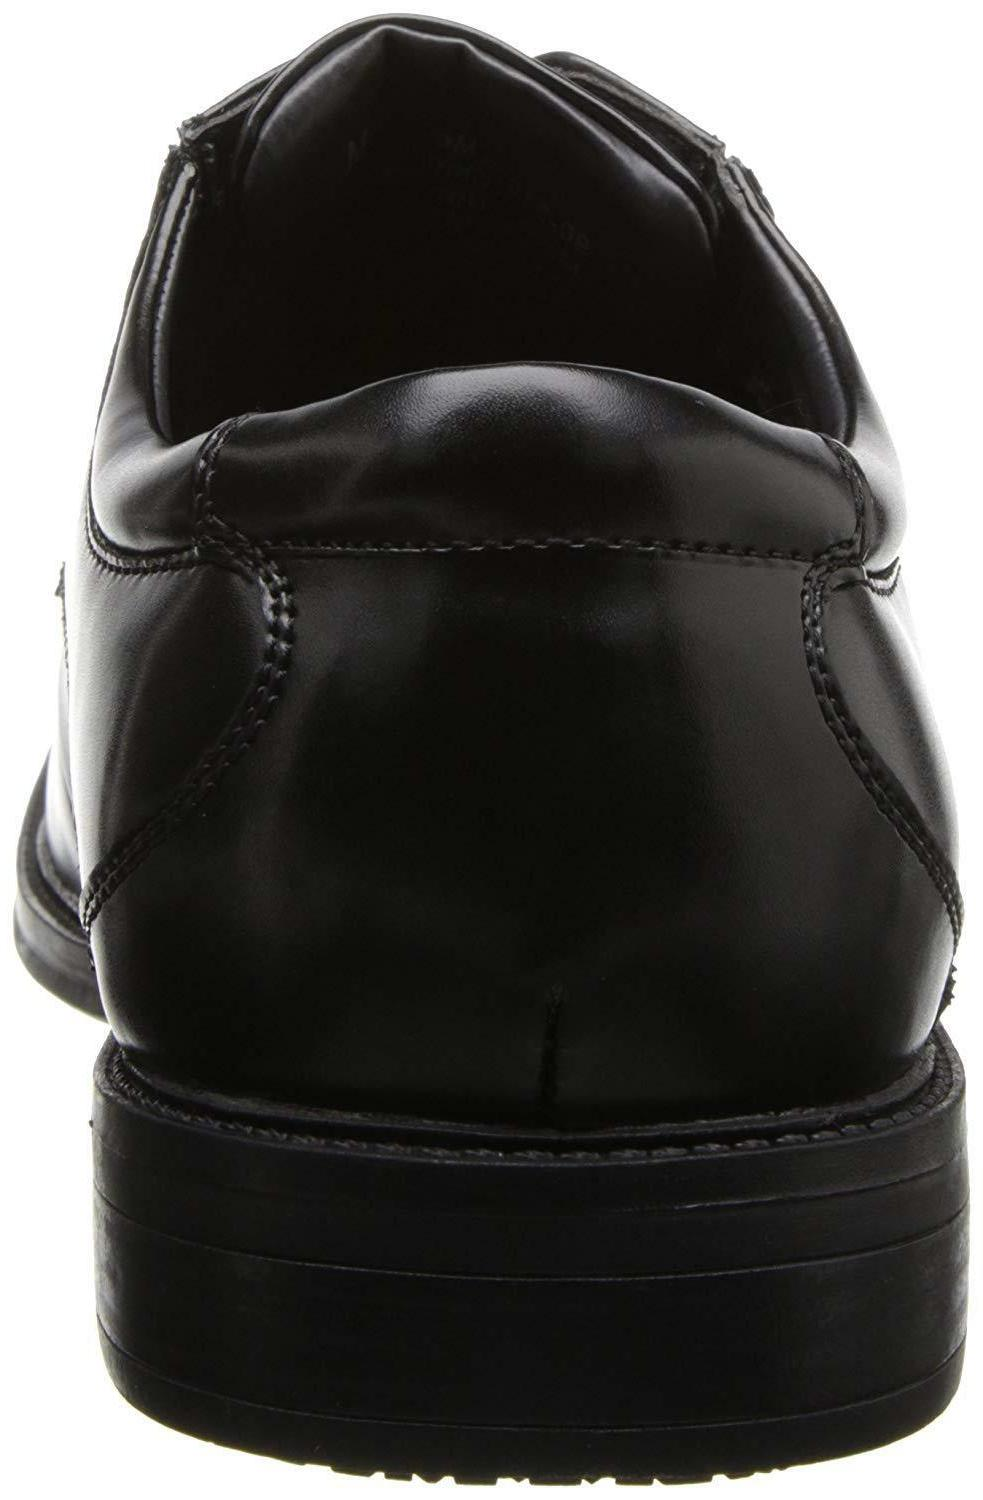 Dockers Men's Sansome Slip-Resistant Work Dress Shoe, Black,